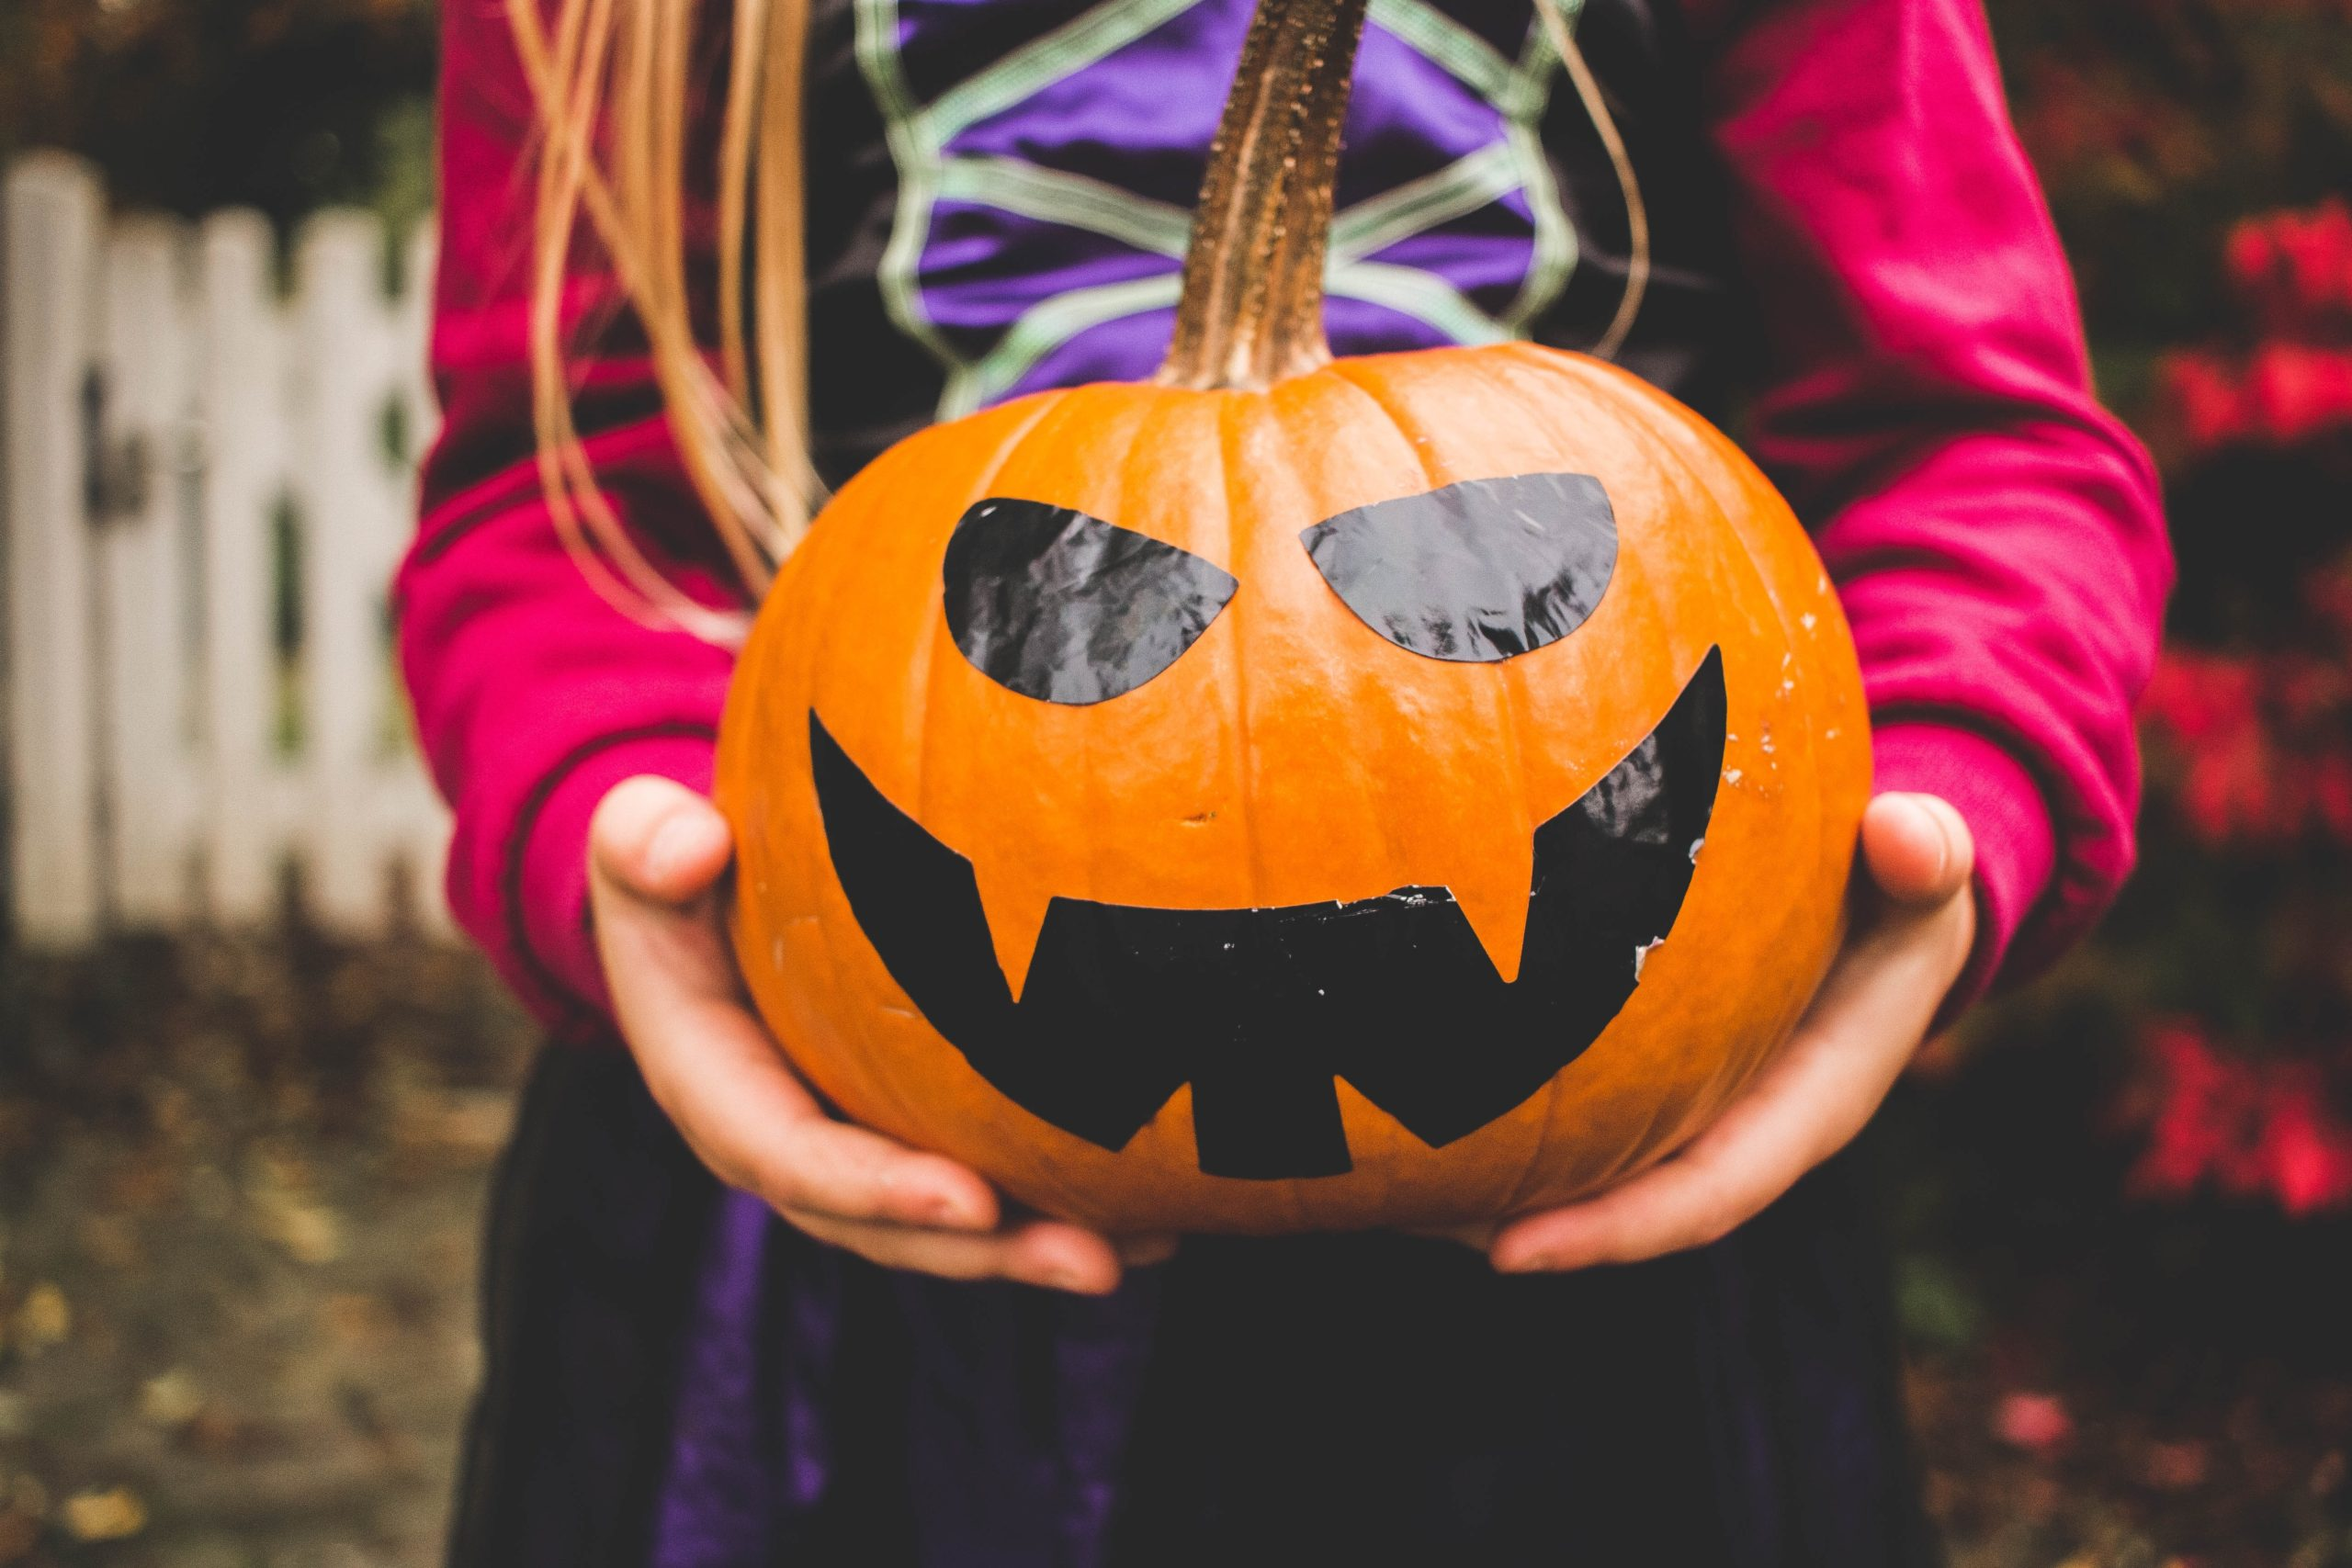 An image of a child in a Halloween costume holding a jack-o-lantern.